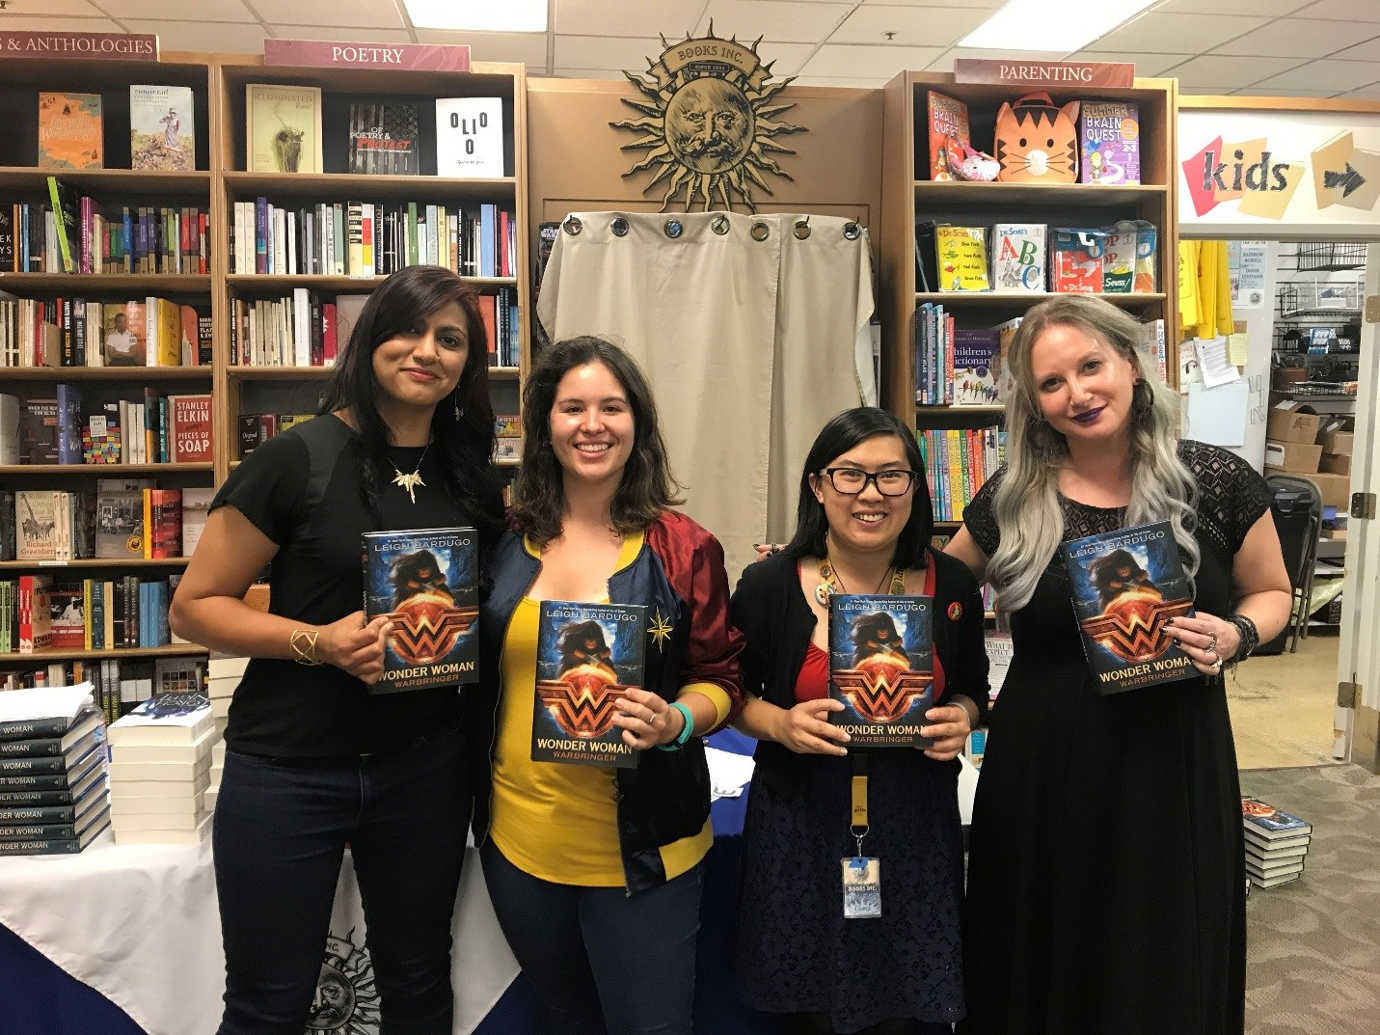 This was taken at our event for the release of Leigh Bardugo's Wonder Woman: Warbringer. She was in conversation with local author Sabaa Tahir. I'm the one in the sweet Wonder Woman jacket, and Connie, in the middle, is a fellow bookseller and one of the first members of Not Your Mother's Book Club!